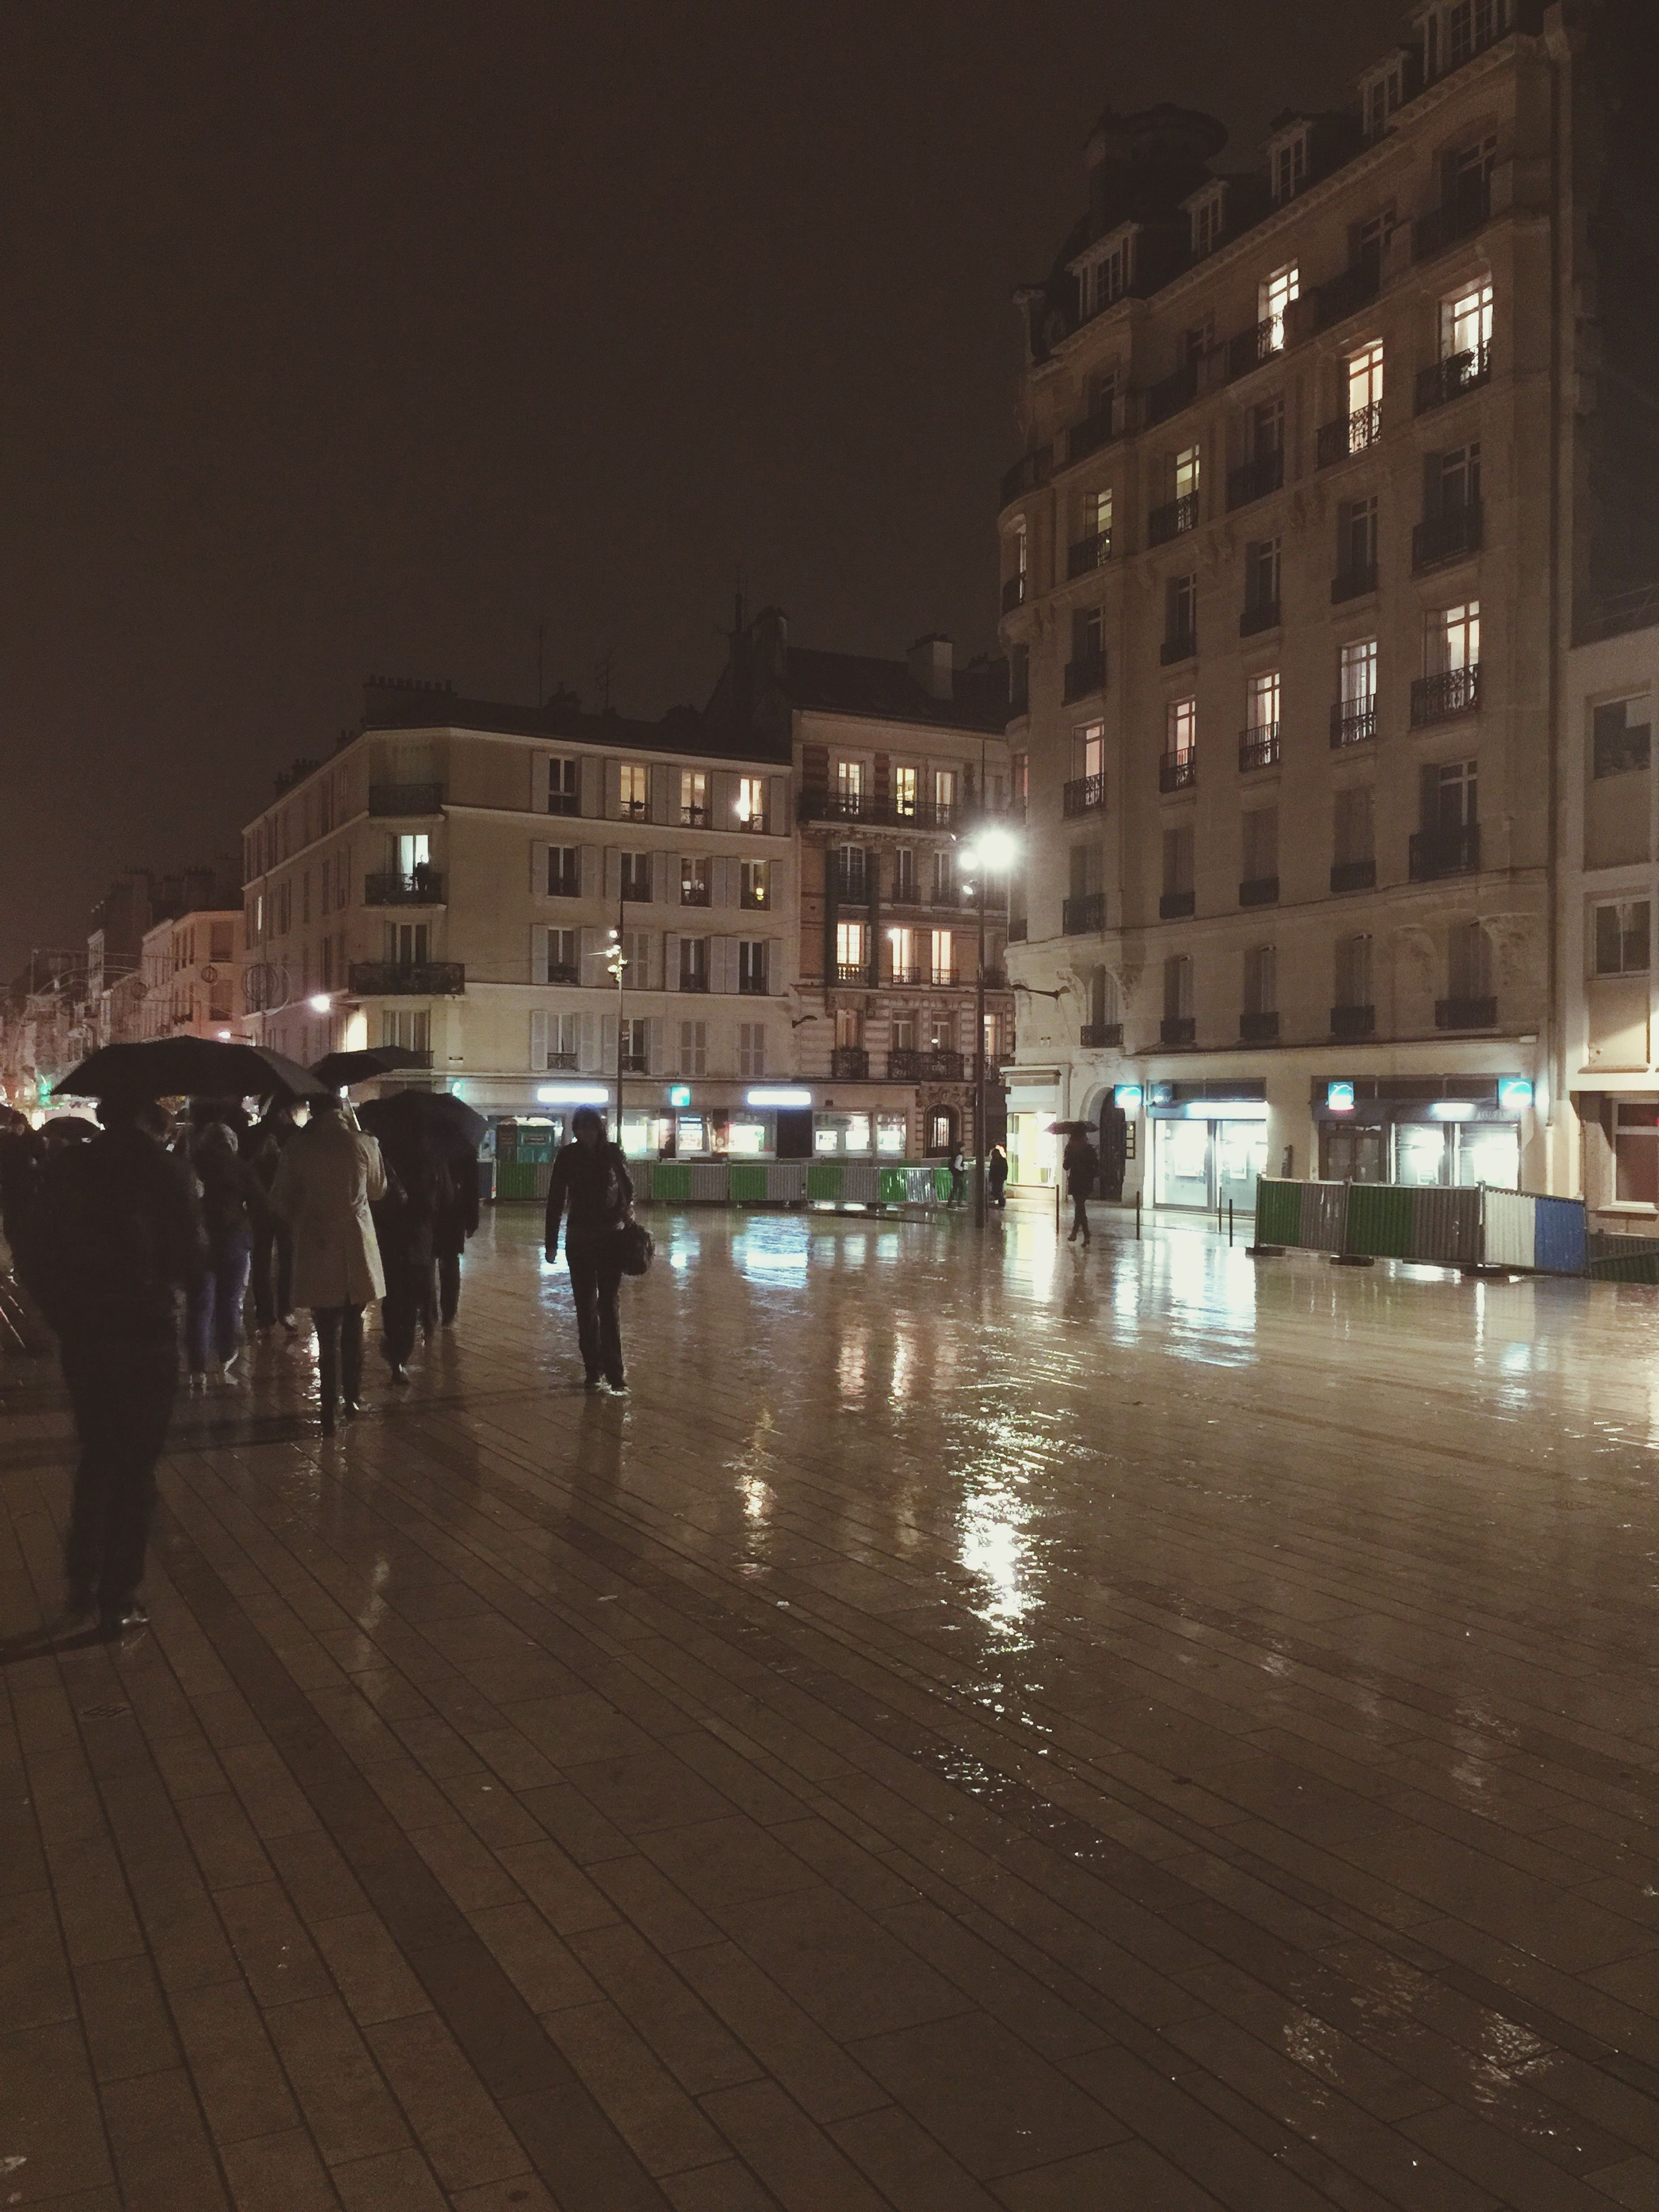 building exterior, architecture, night, built structure, city, illuminated, men, street, walking, city life, lifestyles, person, building, leisure activity, large group of people, full length, city street, street light, outdoors